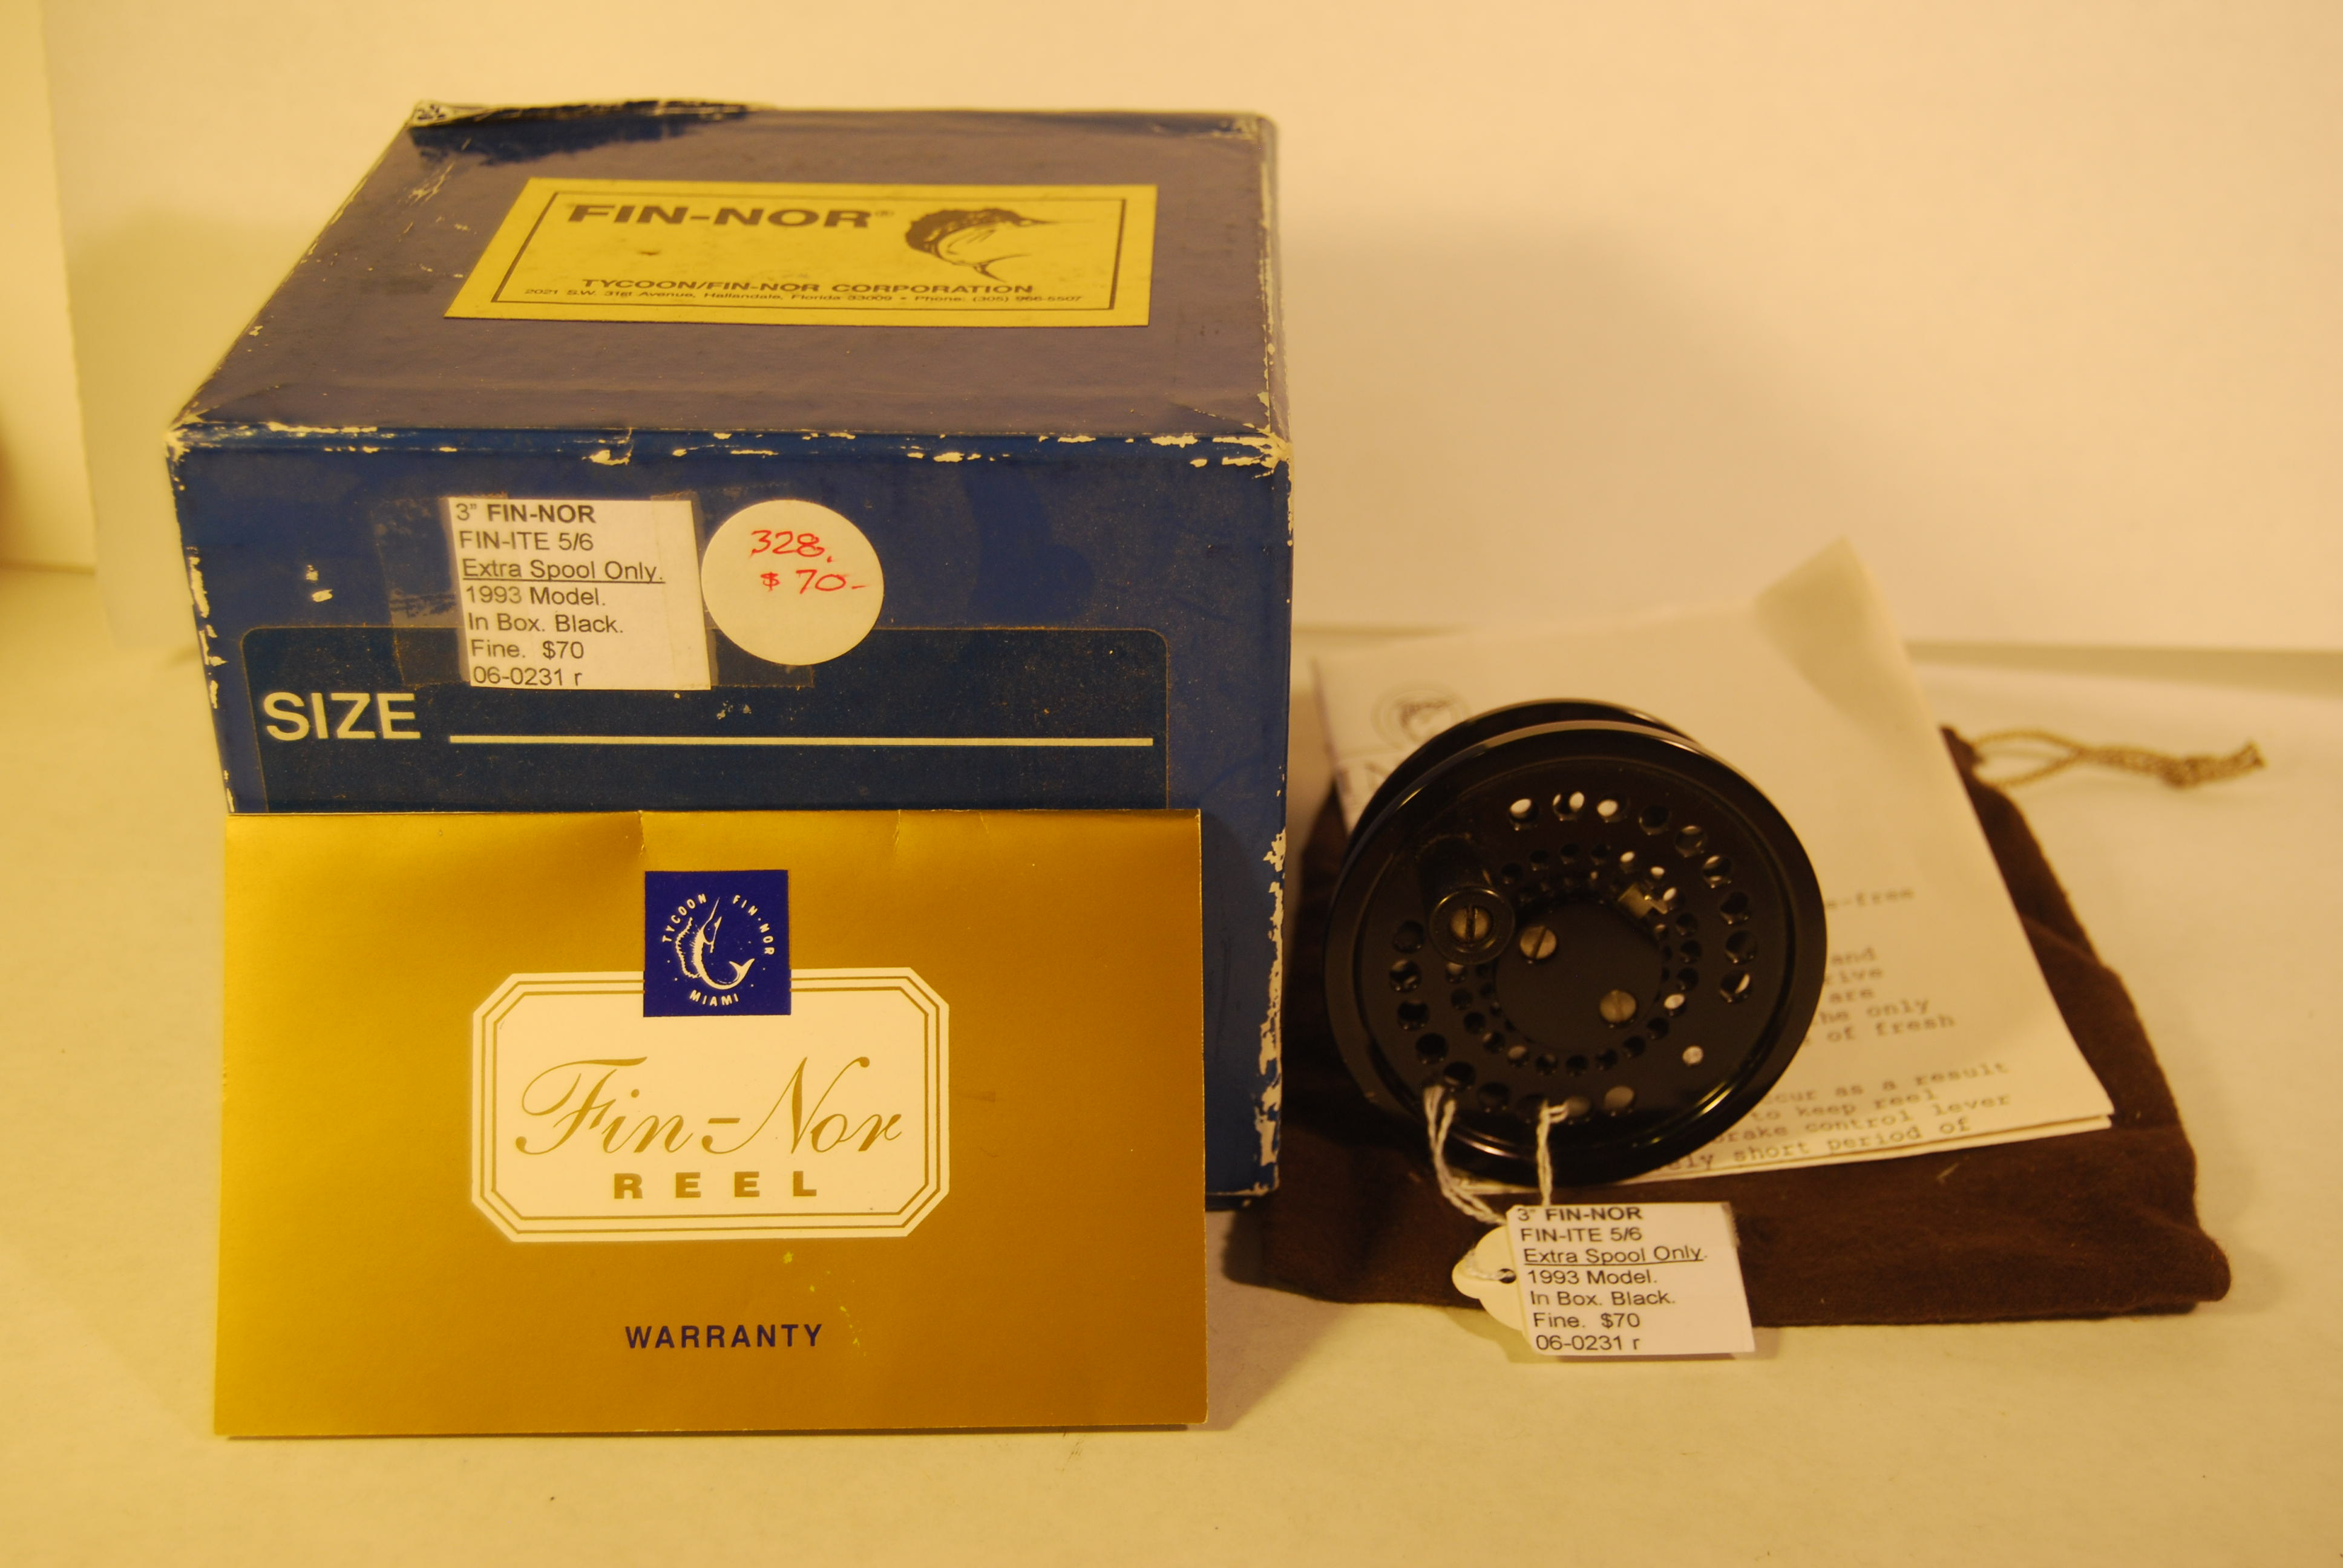 "Image for 3"" FIN-NOR ""FIN-ITE 5/6."" EXTRA SPOOL. 1993 Model. Black. In  Fin-Nor Box with Bag, Warranty & Instructions."